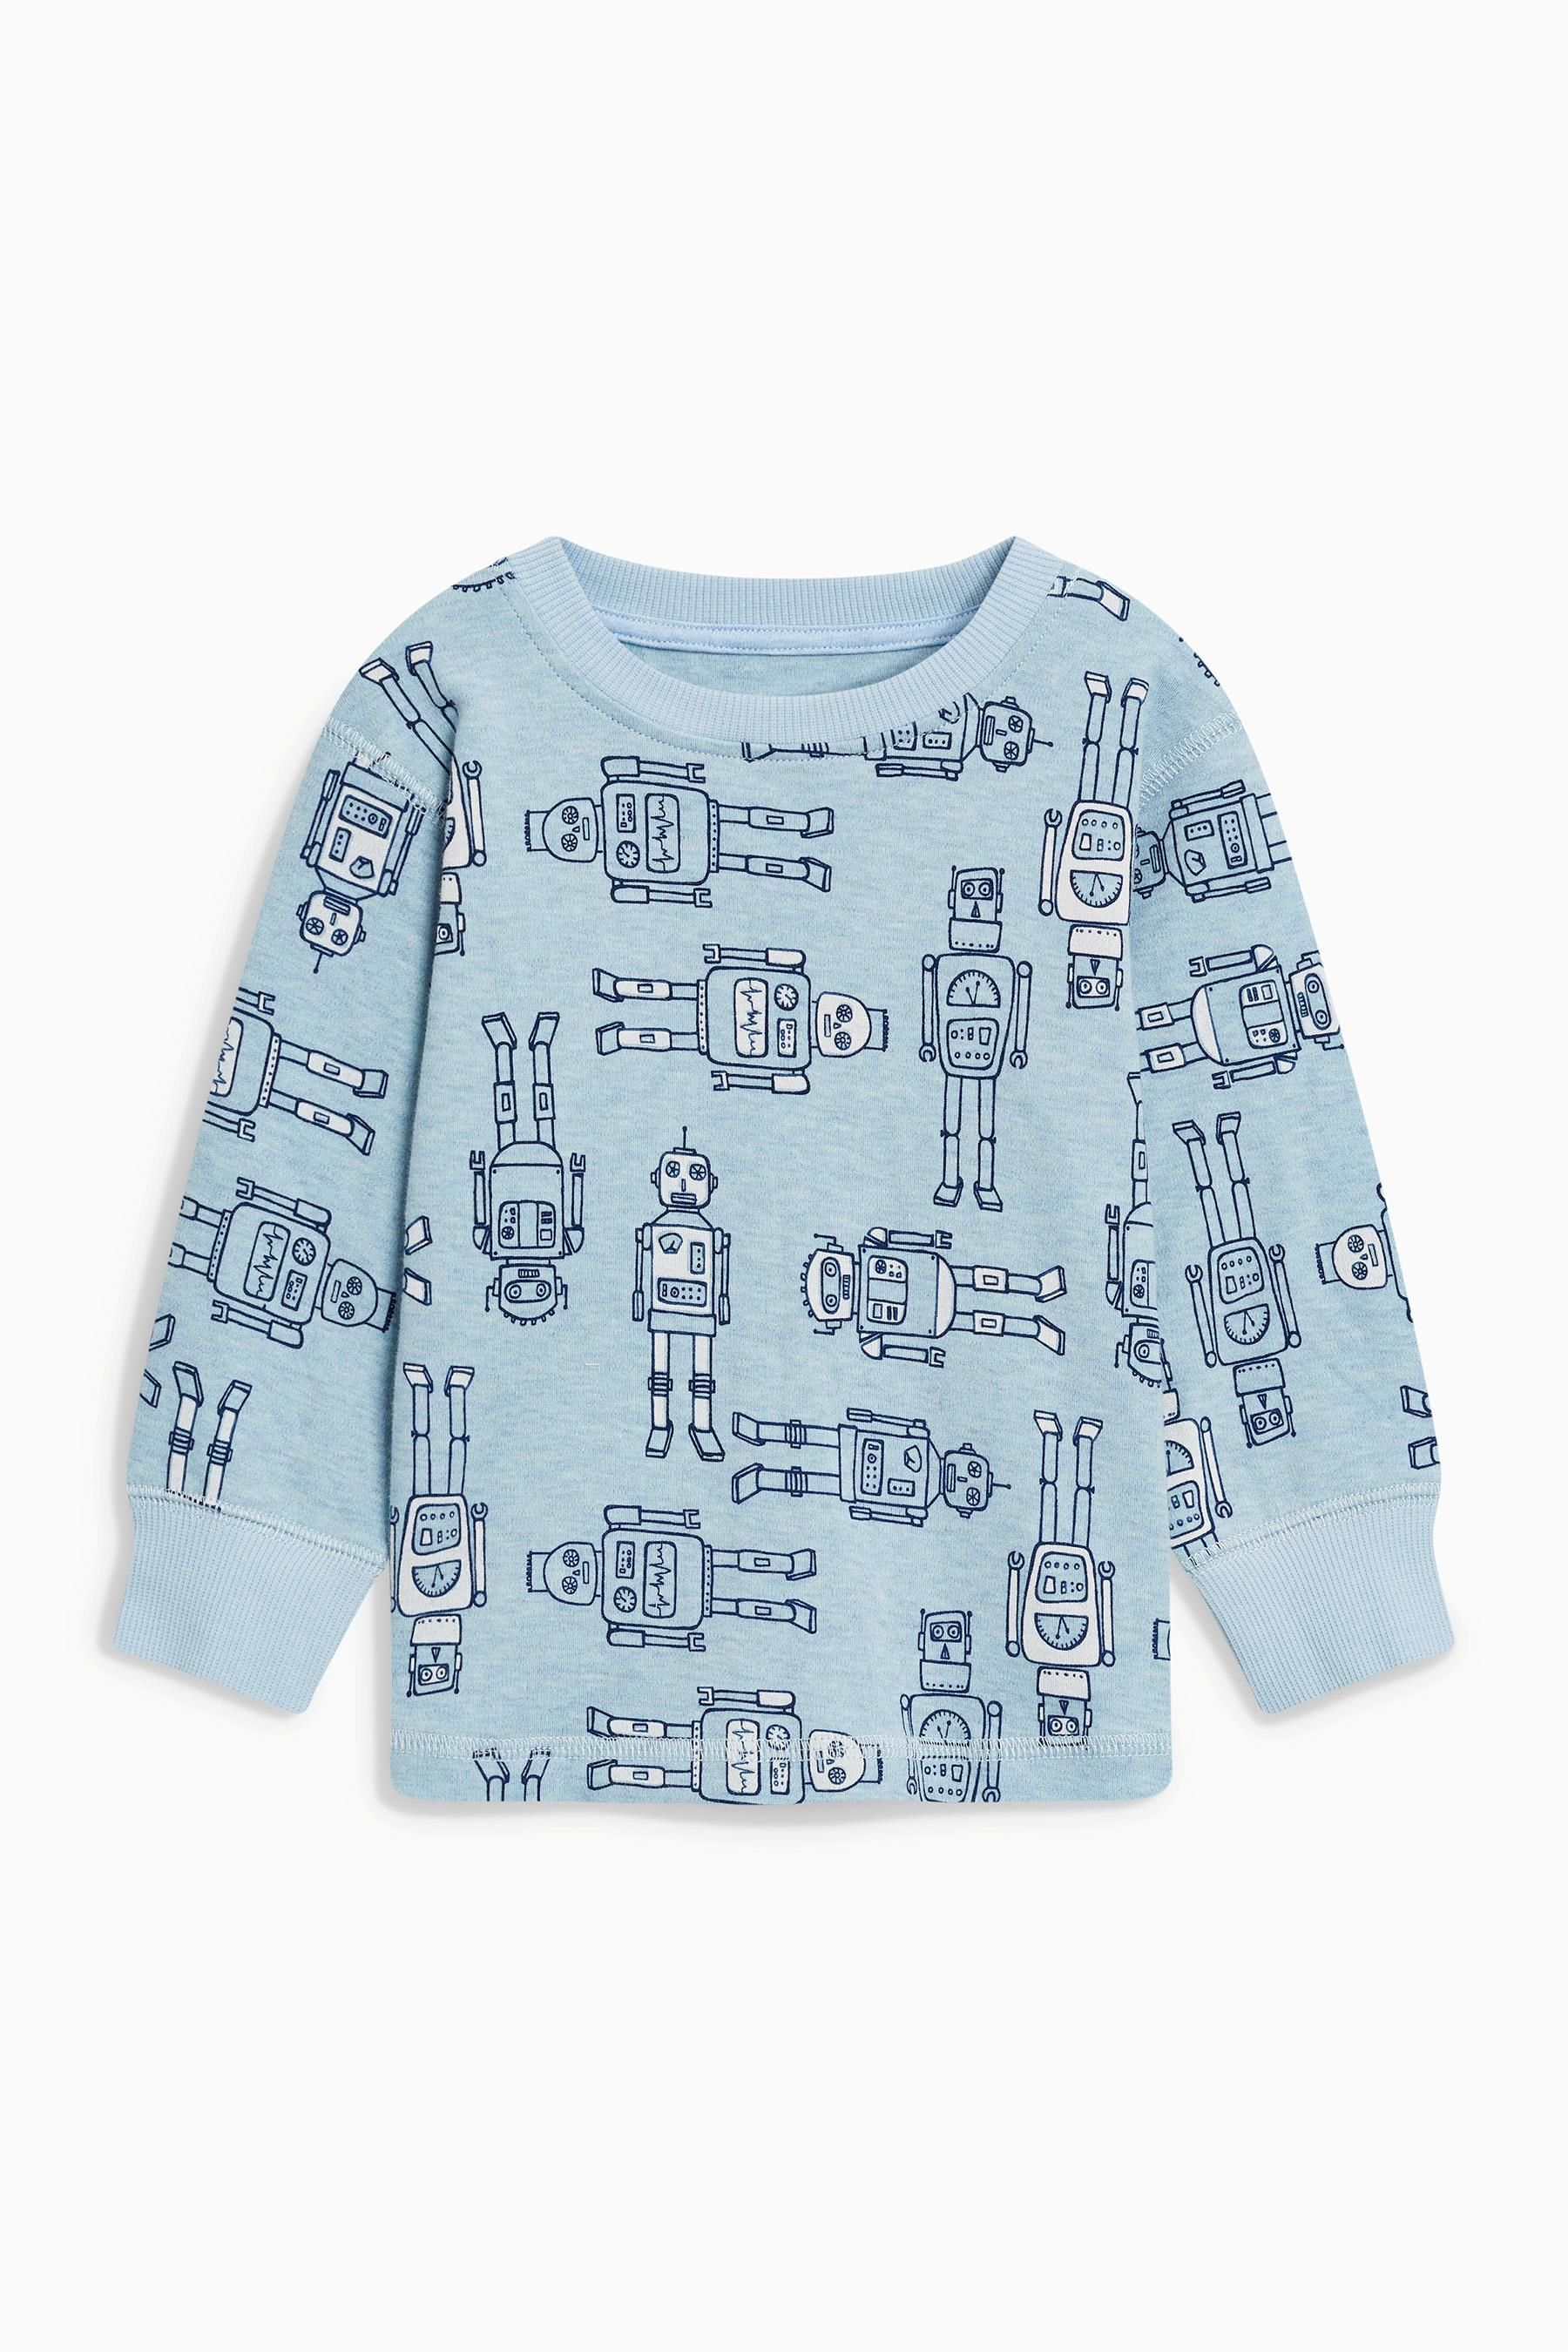 9ea7a21c73e Buy Blue Dog Snuggle Fit Pyjamas Three Pack (9mths-8yrs) from the Next UK  online shop